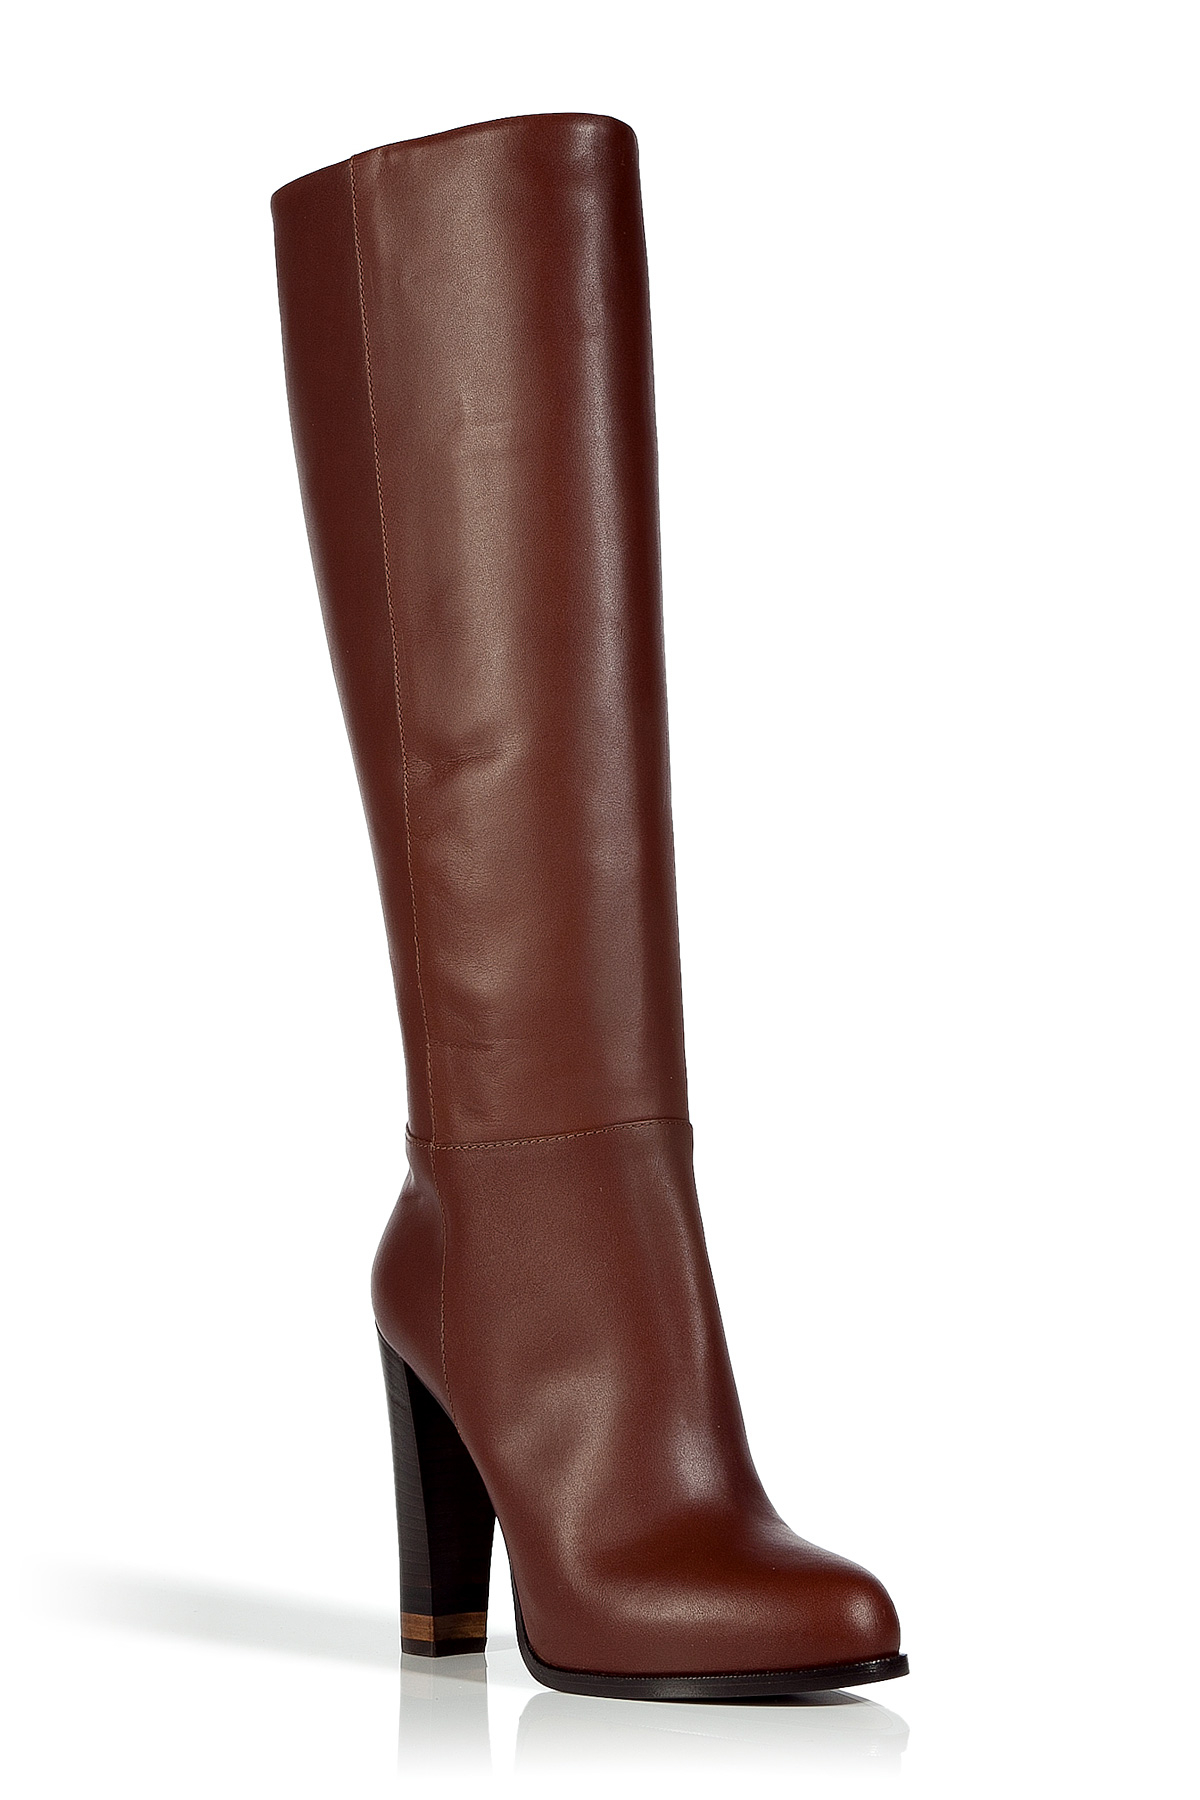 fendi chocolate high heel leather boots in brown lyst